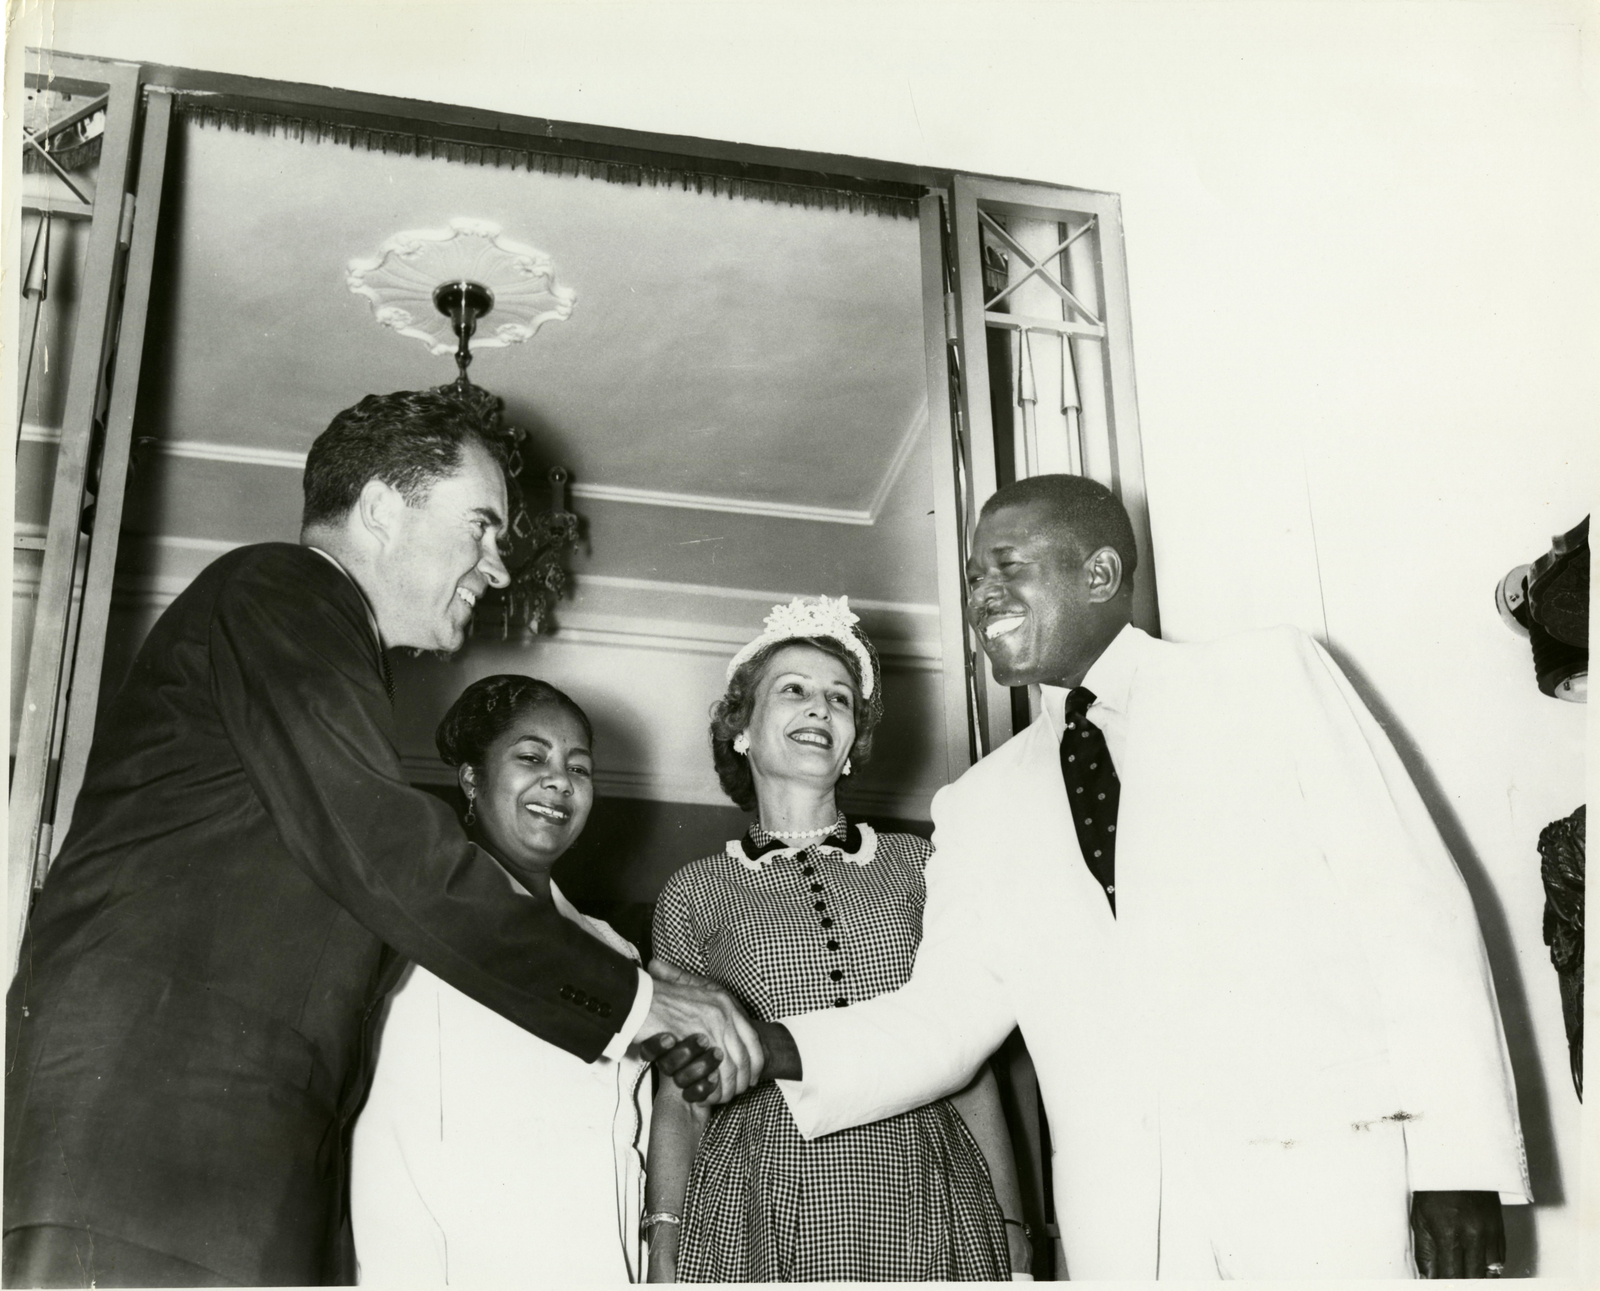 Vice President Richard Nixon shakes hands with Haiti rule Paul Magloire. Pat Nixon and Yolette Leconte Magloire stand behind them